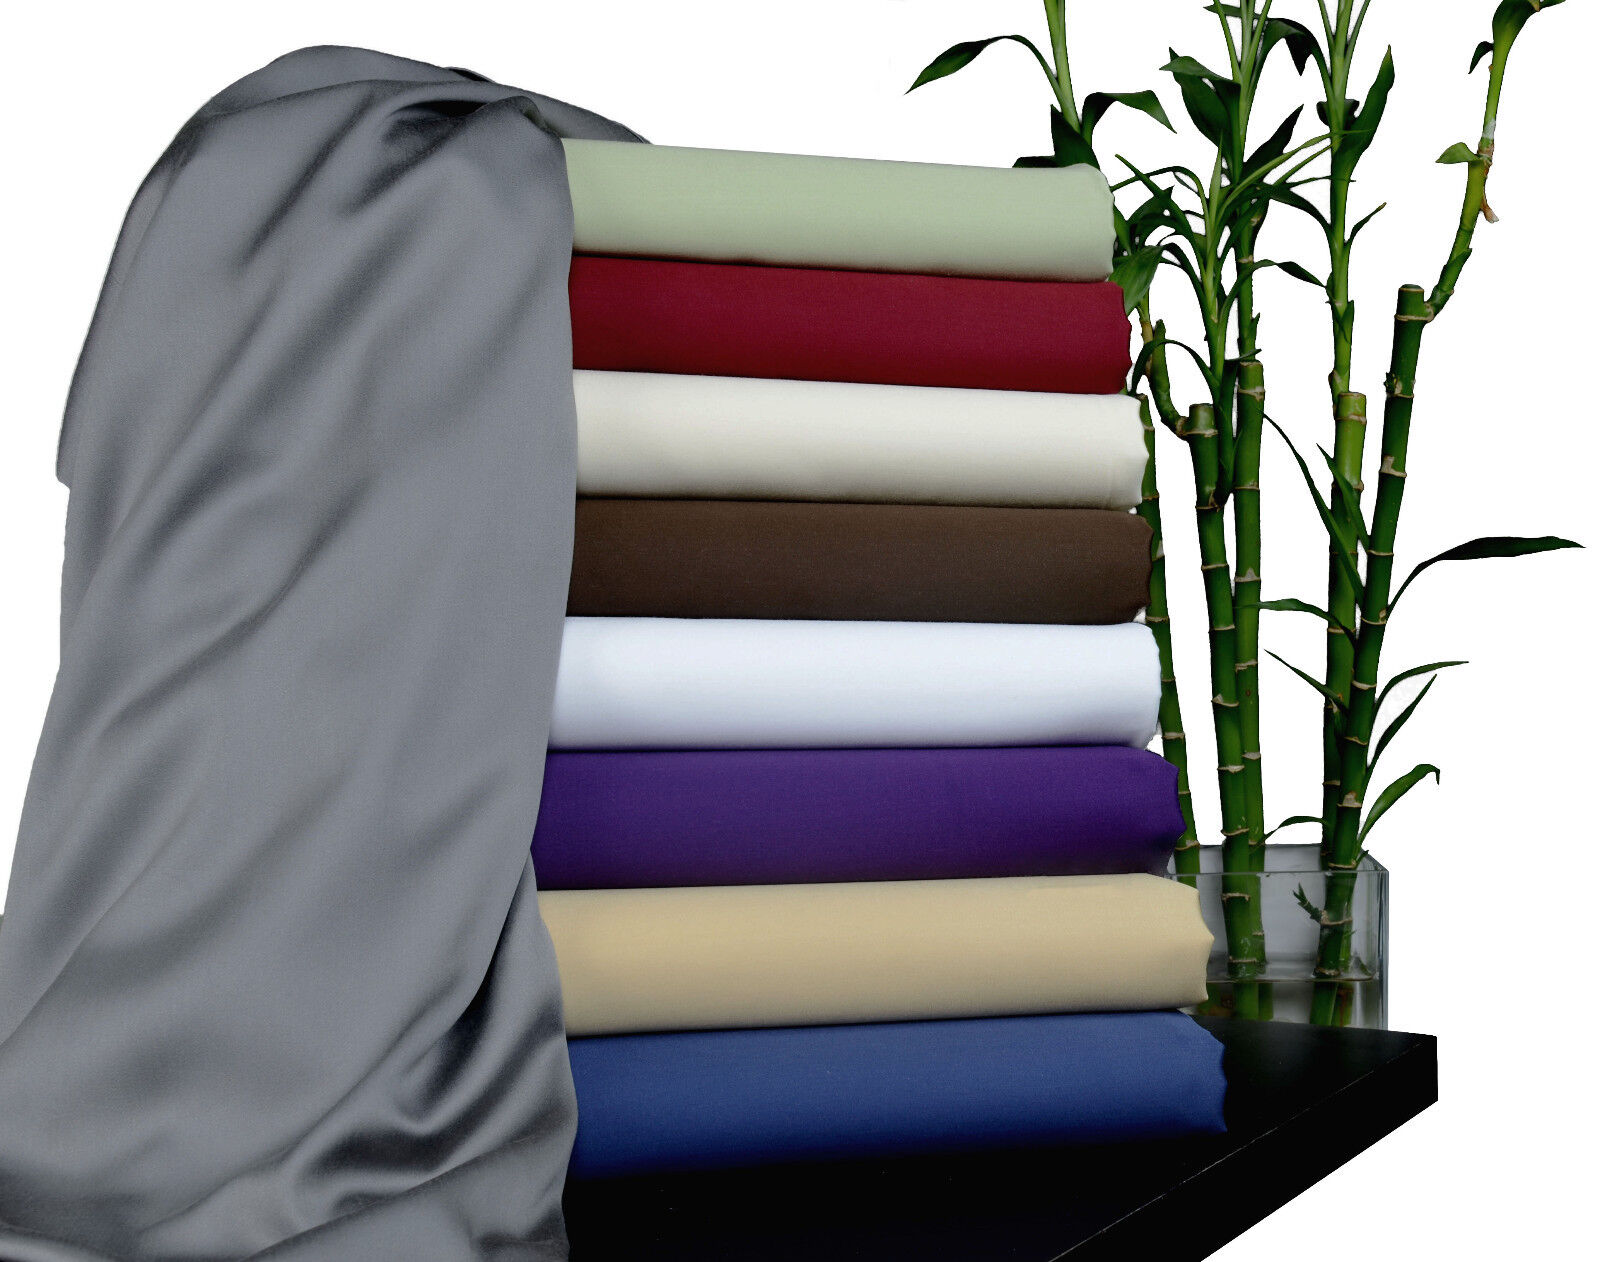 100% Rayon from Bamboo Sheet Set NEW Bedding